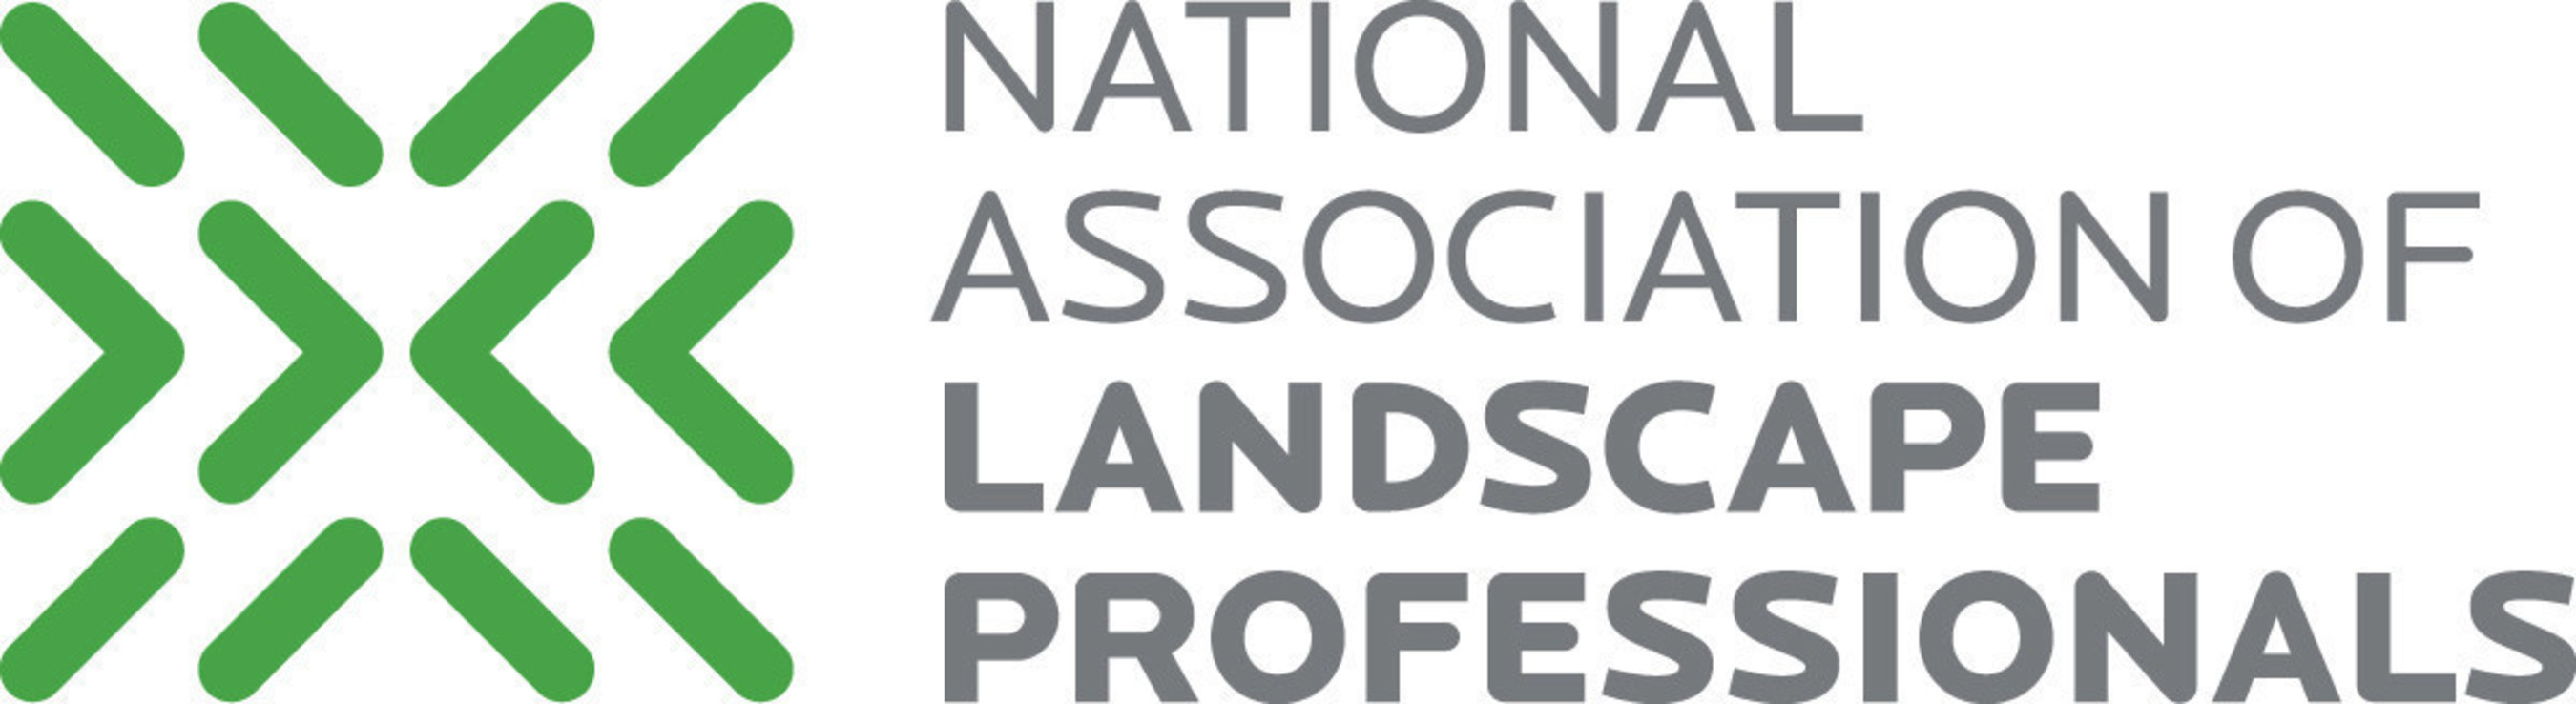 The National Association of Landscape Professionals will continue to provide business and safety education to its members, certification through the Landscape Industry Certified designation, as well as lobbying on behalf of the industry with lawmakers and promoting the industry to the public. But, it also will now focus on a reinvigorated commitment to advocacy, spotlighting the professionalism of its members, providing the public with the best, most trusted source of landscape and lawn care information, and promoting the value of using professional landscape industry services. Get more information at www.landscapeprofessionals.org.